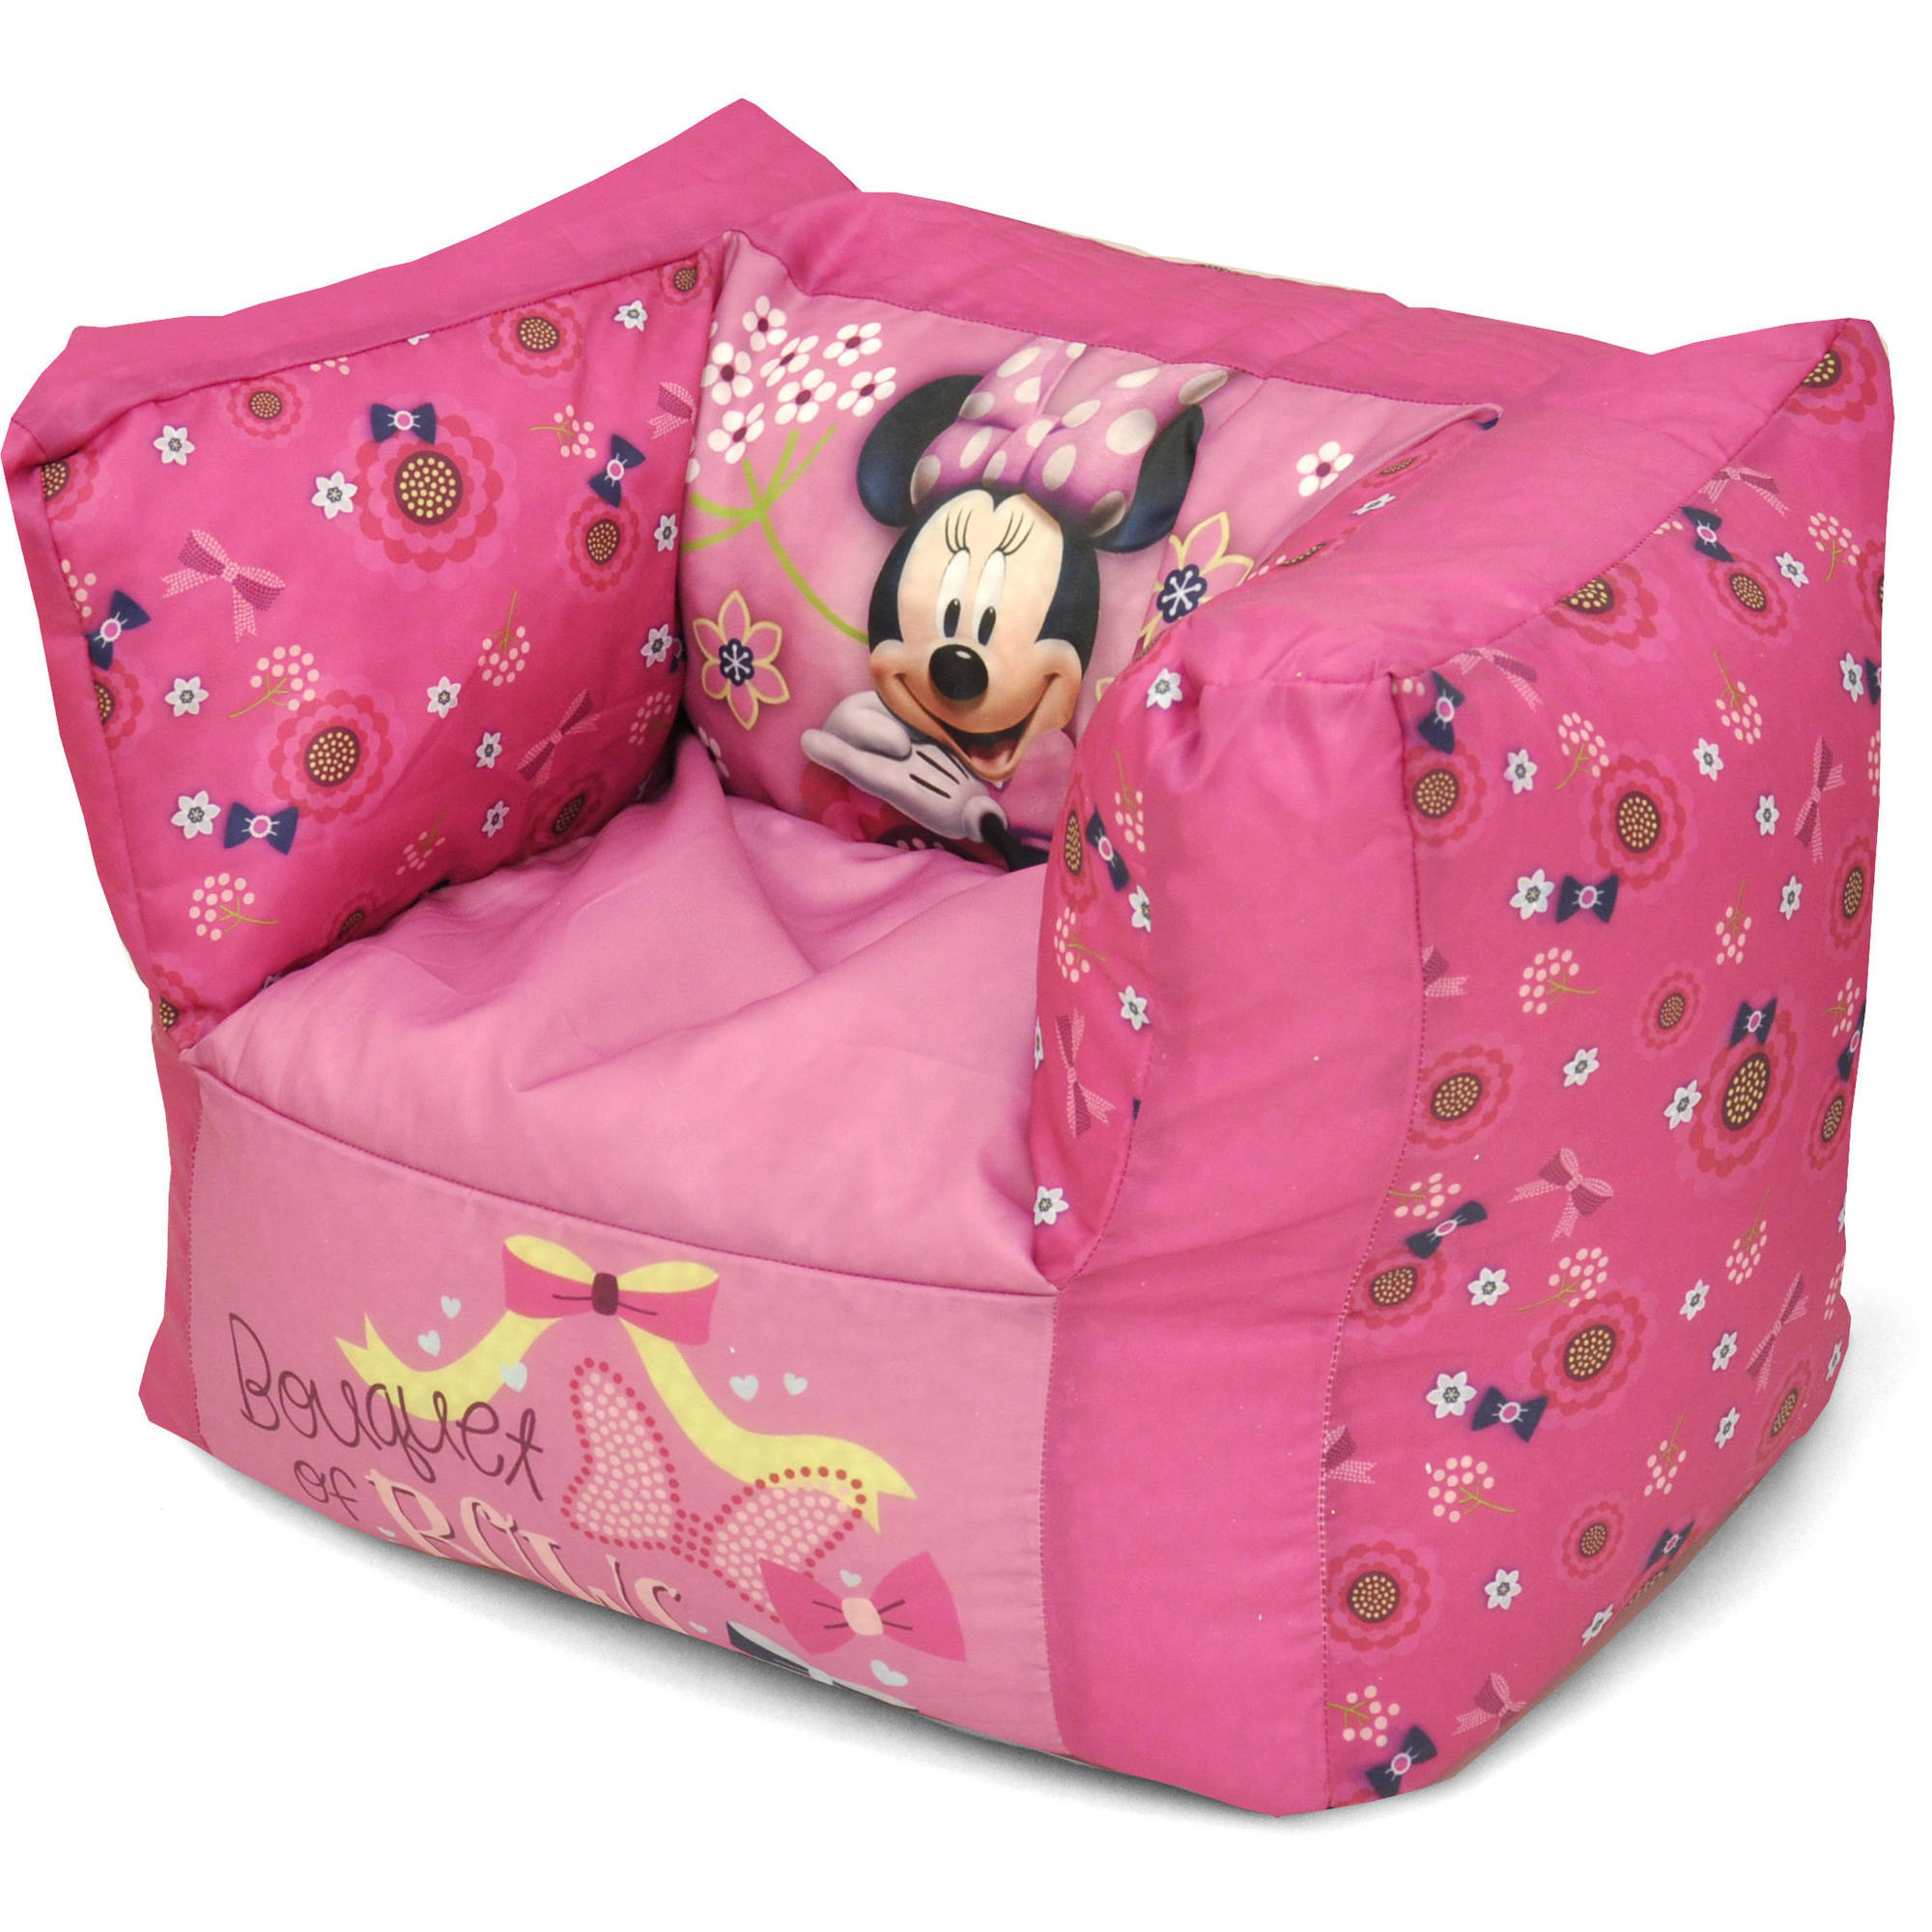 Minnie Mouse Square Bean Bag Chair